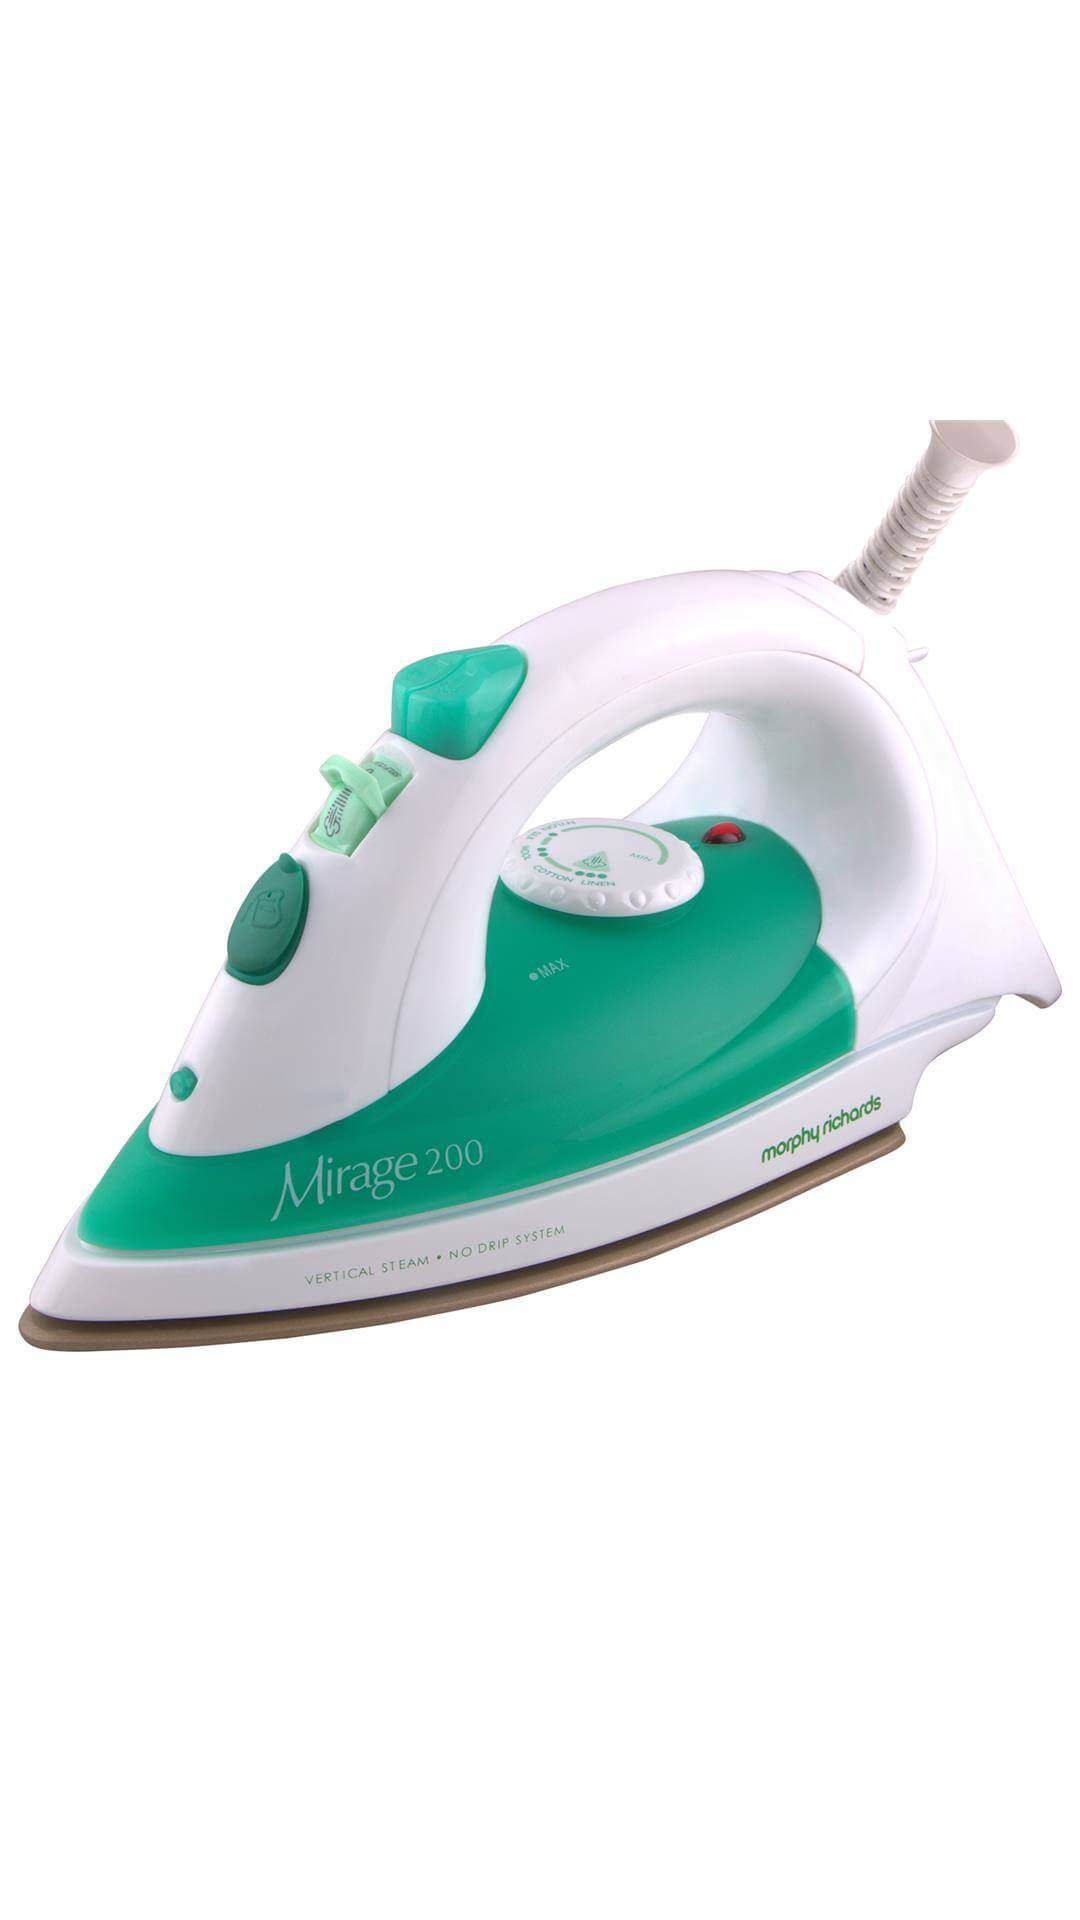 Morphy Richards Mirage 200 1320 W Steam Iron (White & Green)